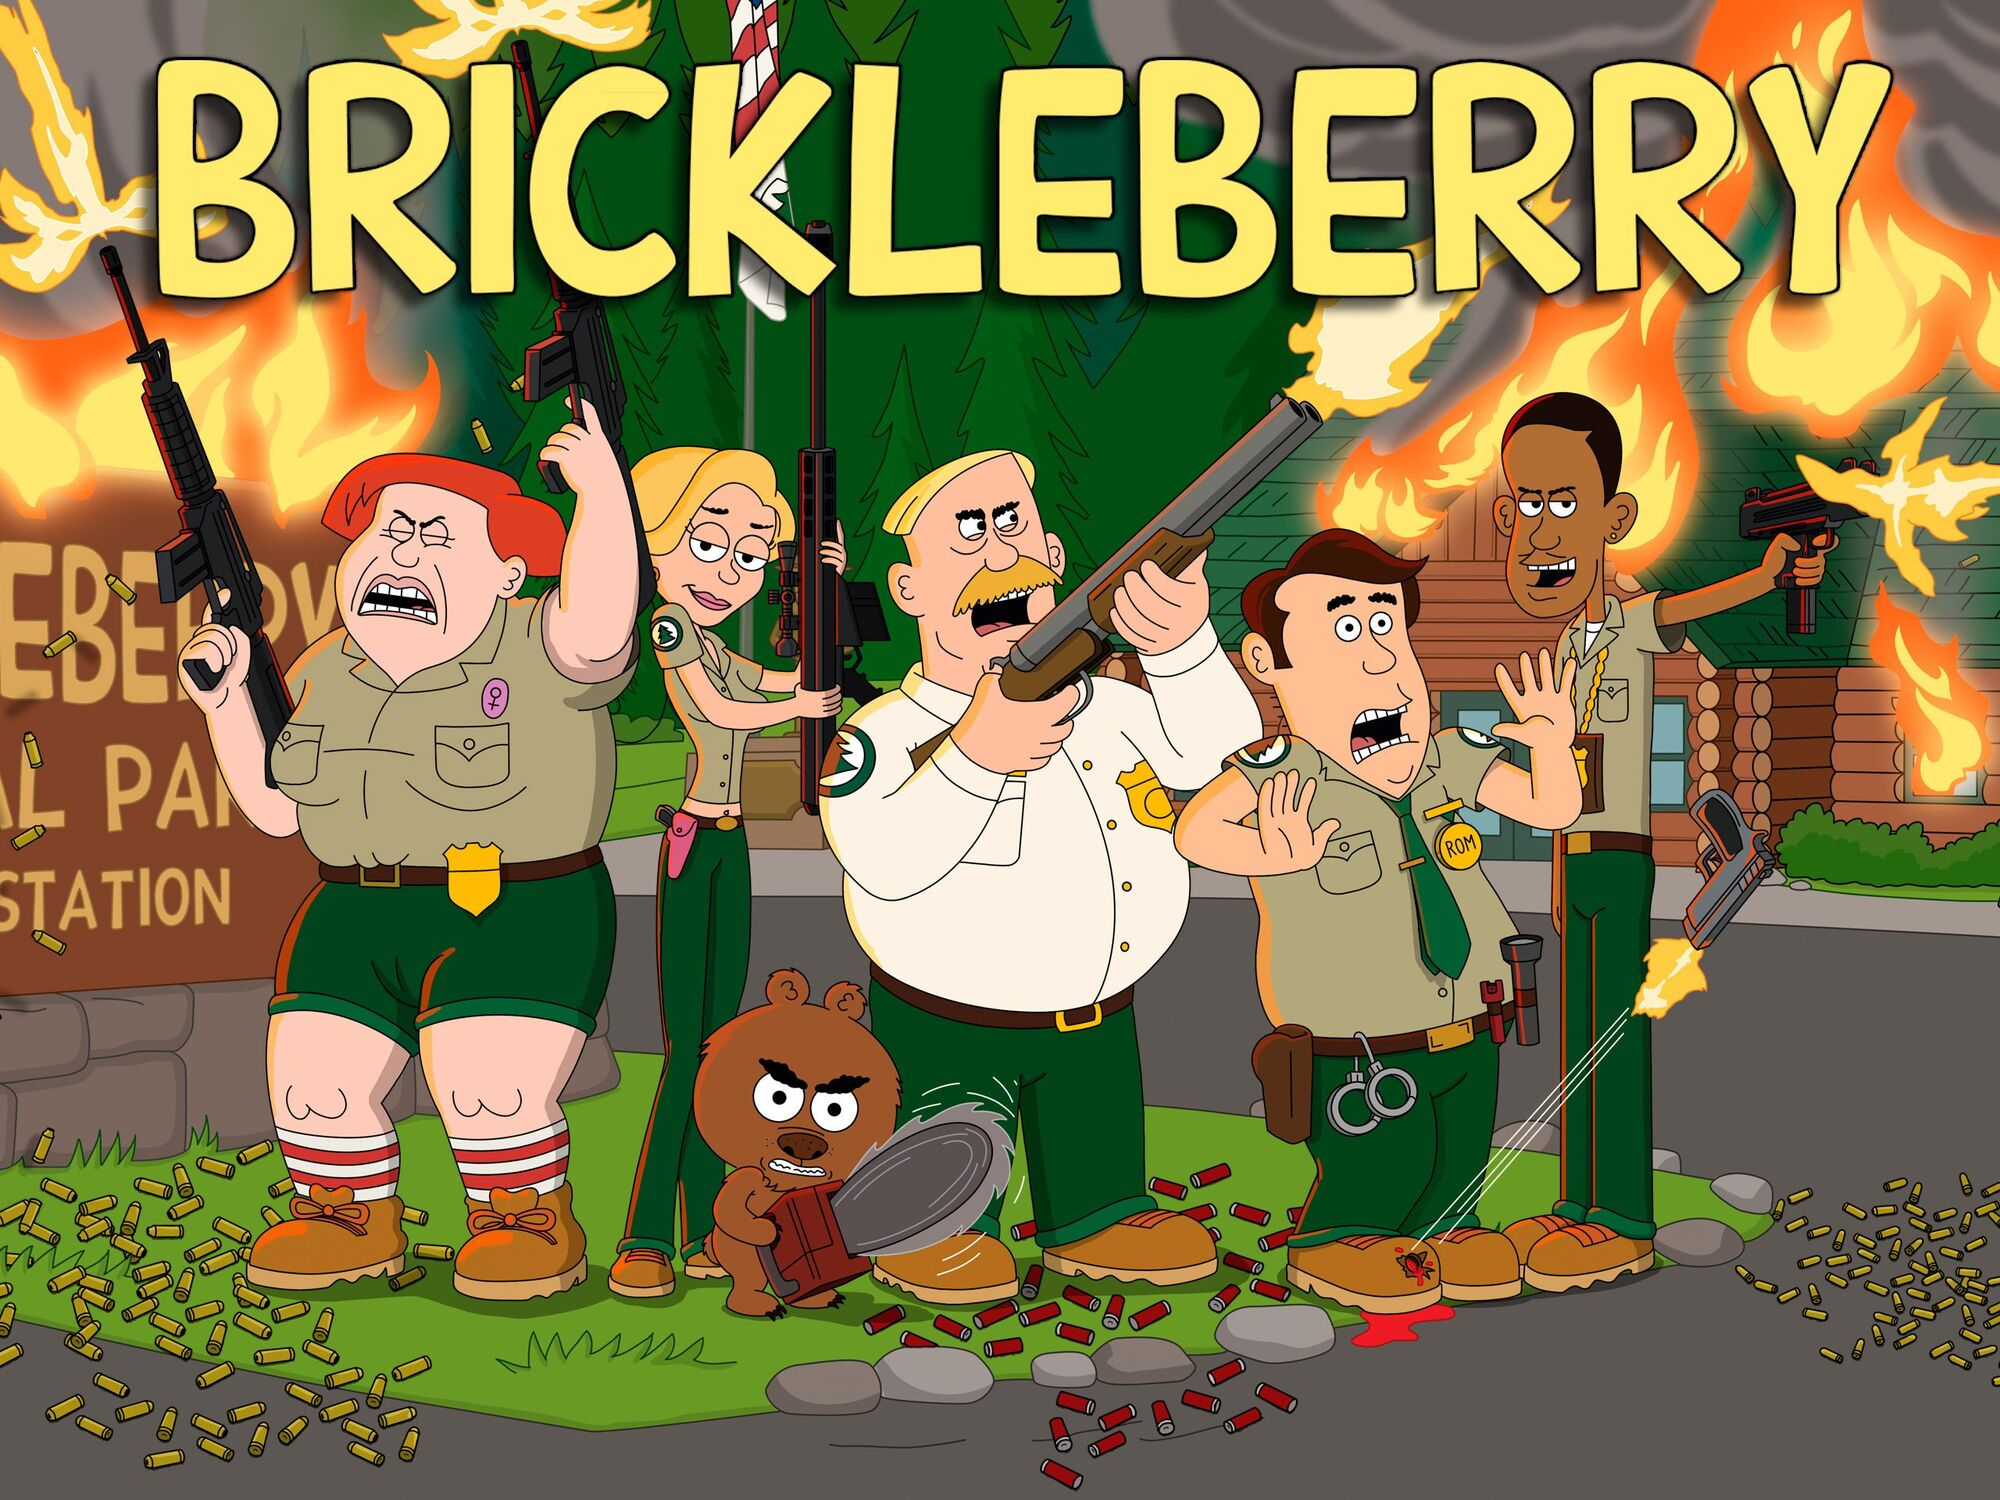 Brickelberry